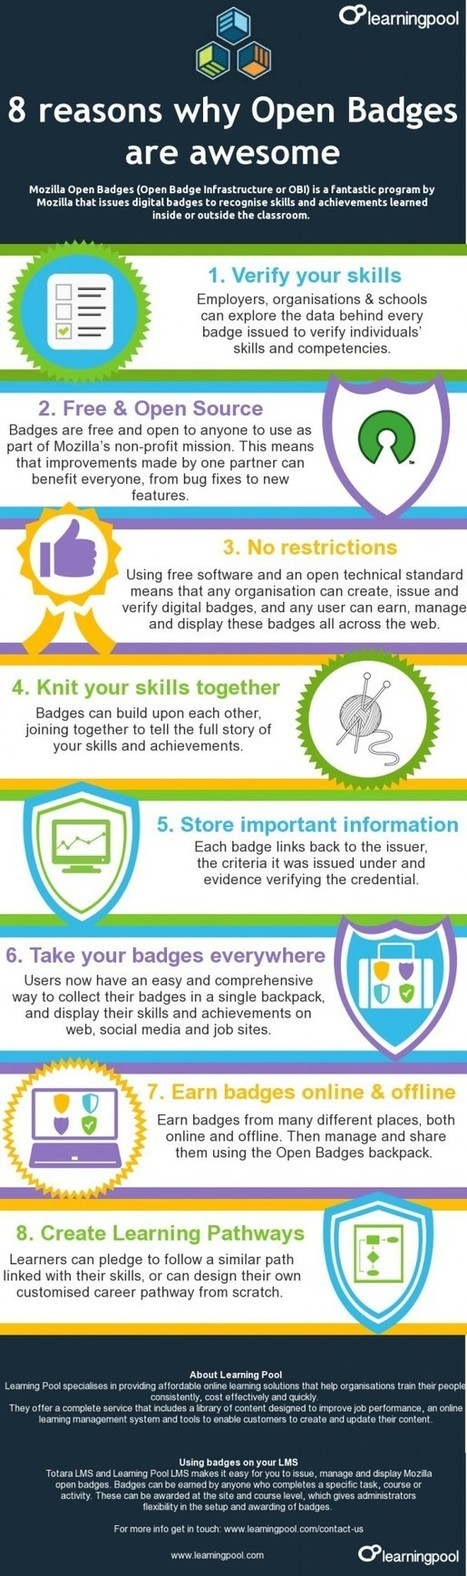 8 Reasons Why Open #Badges Are Awesome Infographic | (I+D)+(i+c): Gamification, Game-Based Learning (GBL) | Scoop.it